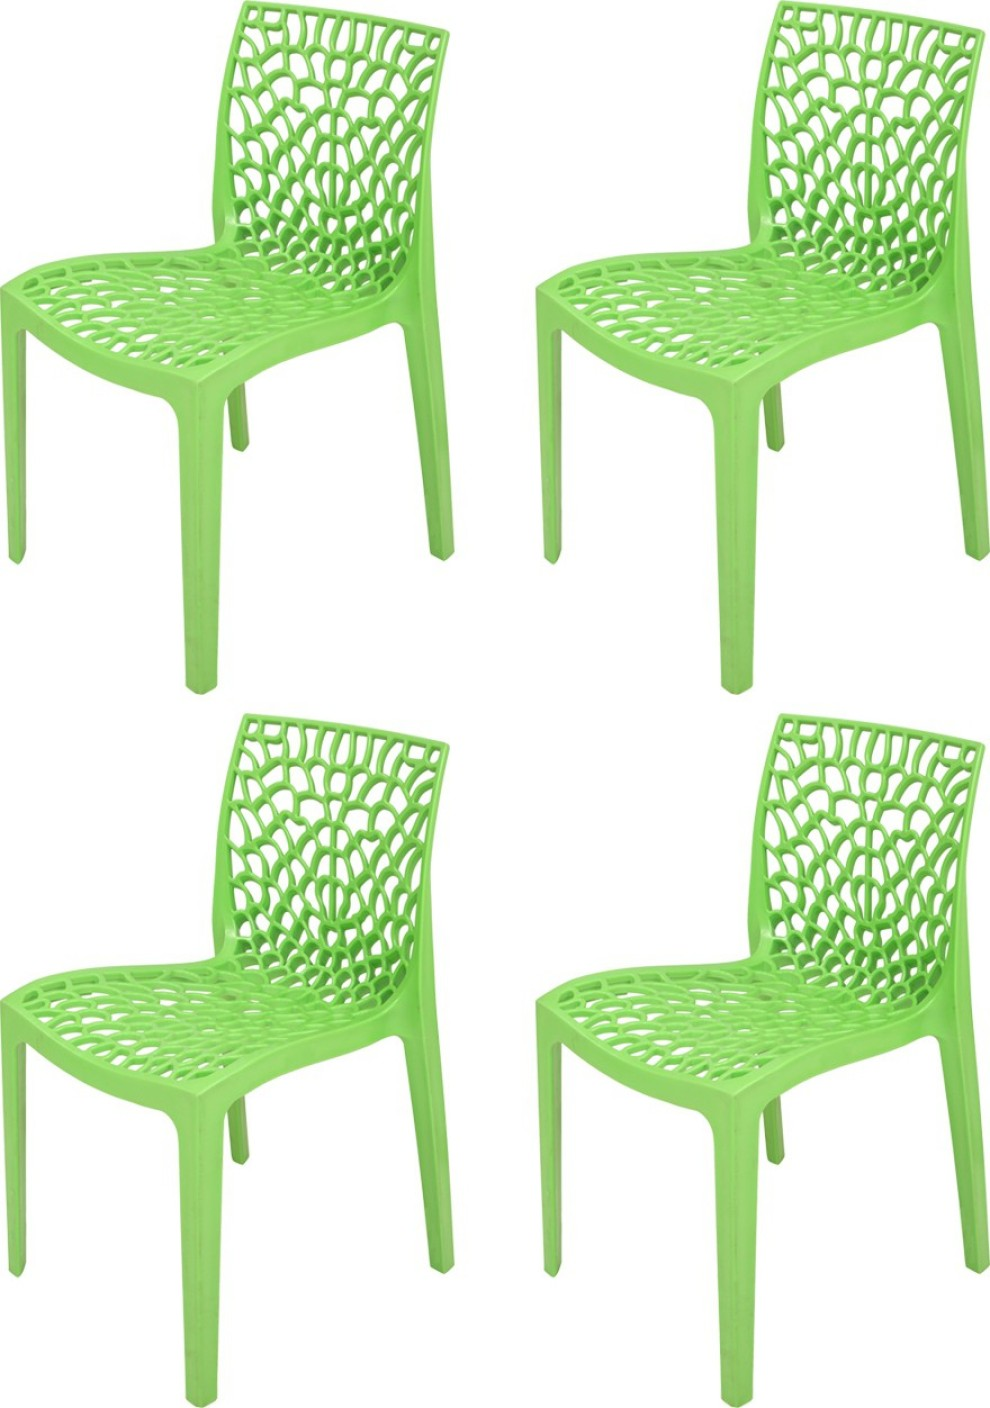 Supreme Web Plastic Outdoor Chair Price In India Buy Supreme Web Plastic Outdoor Chair Online